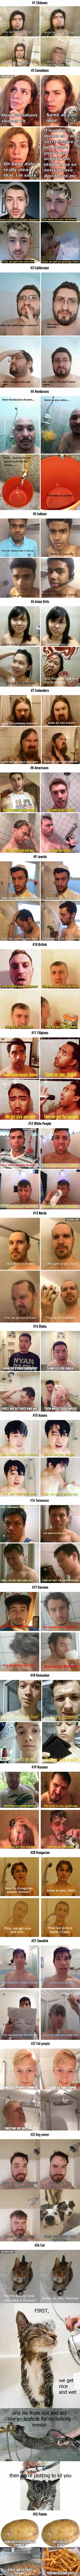 25 Ridiculously stereotypical memes reveal how different people take showers (Favorite Meme)